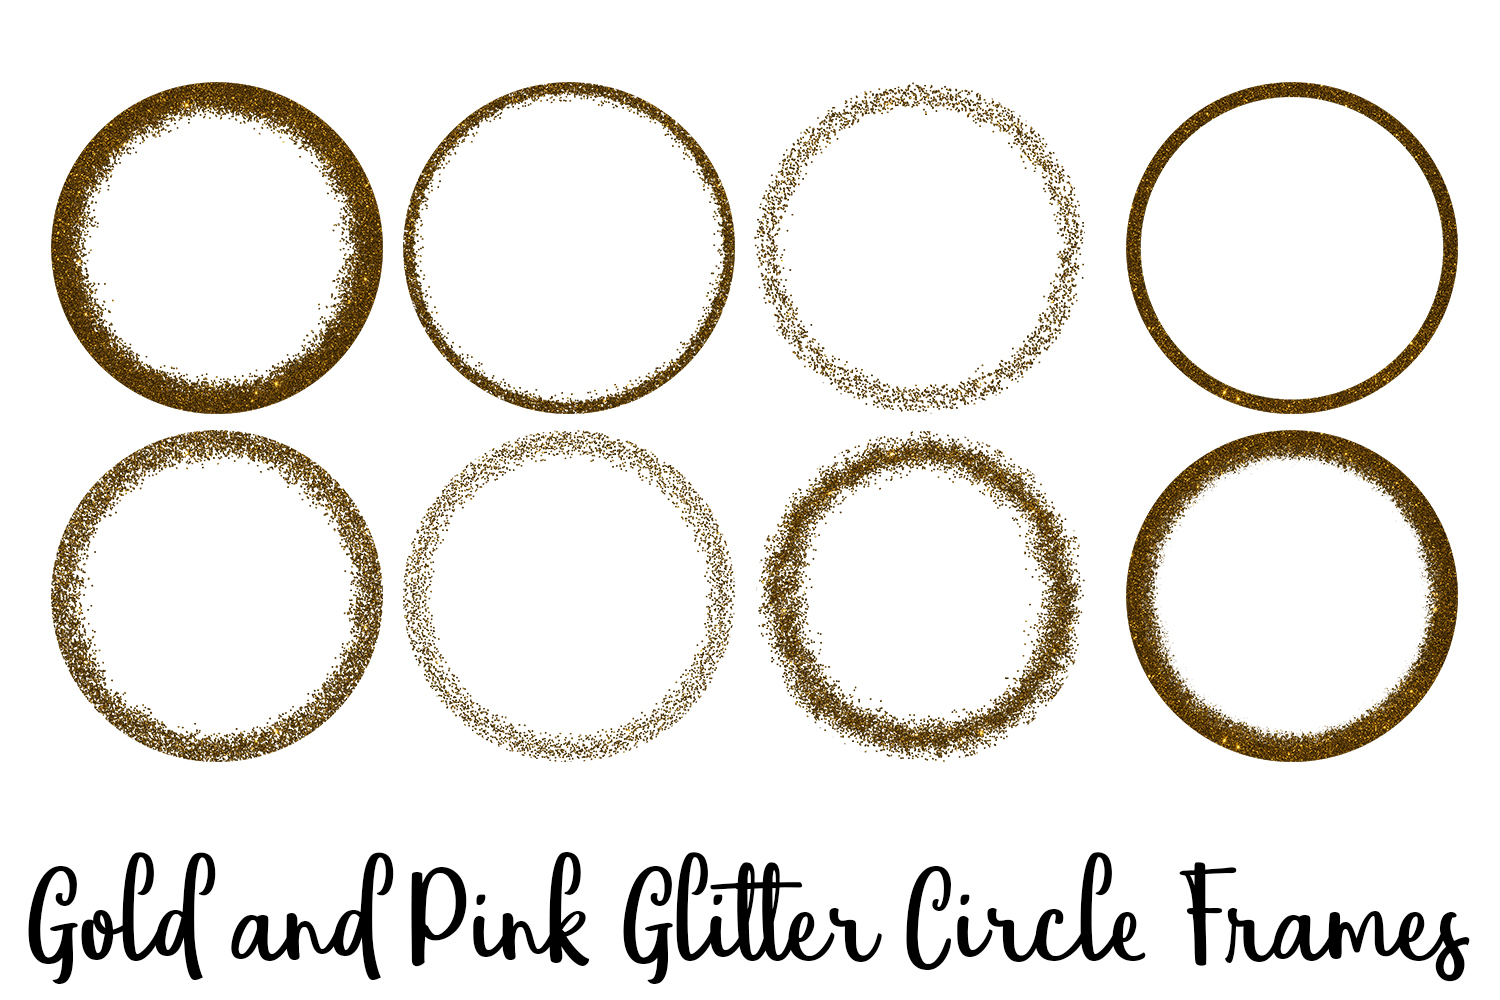 Gold and Pink Glitter Circle Frames Clip Art example image 4